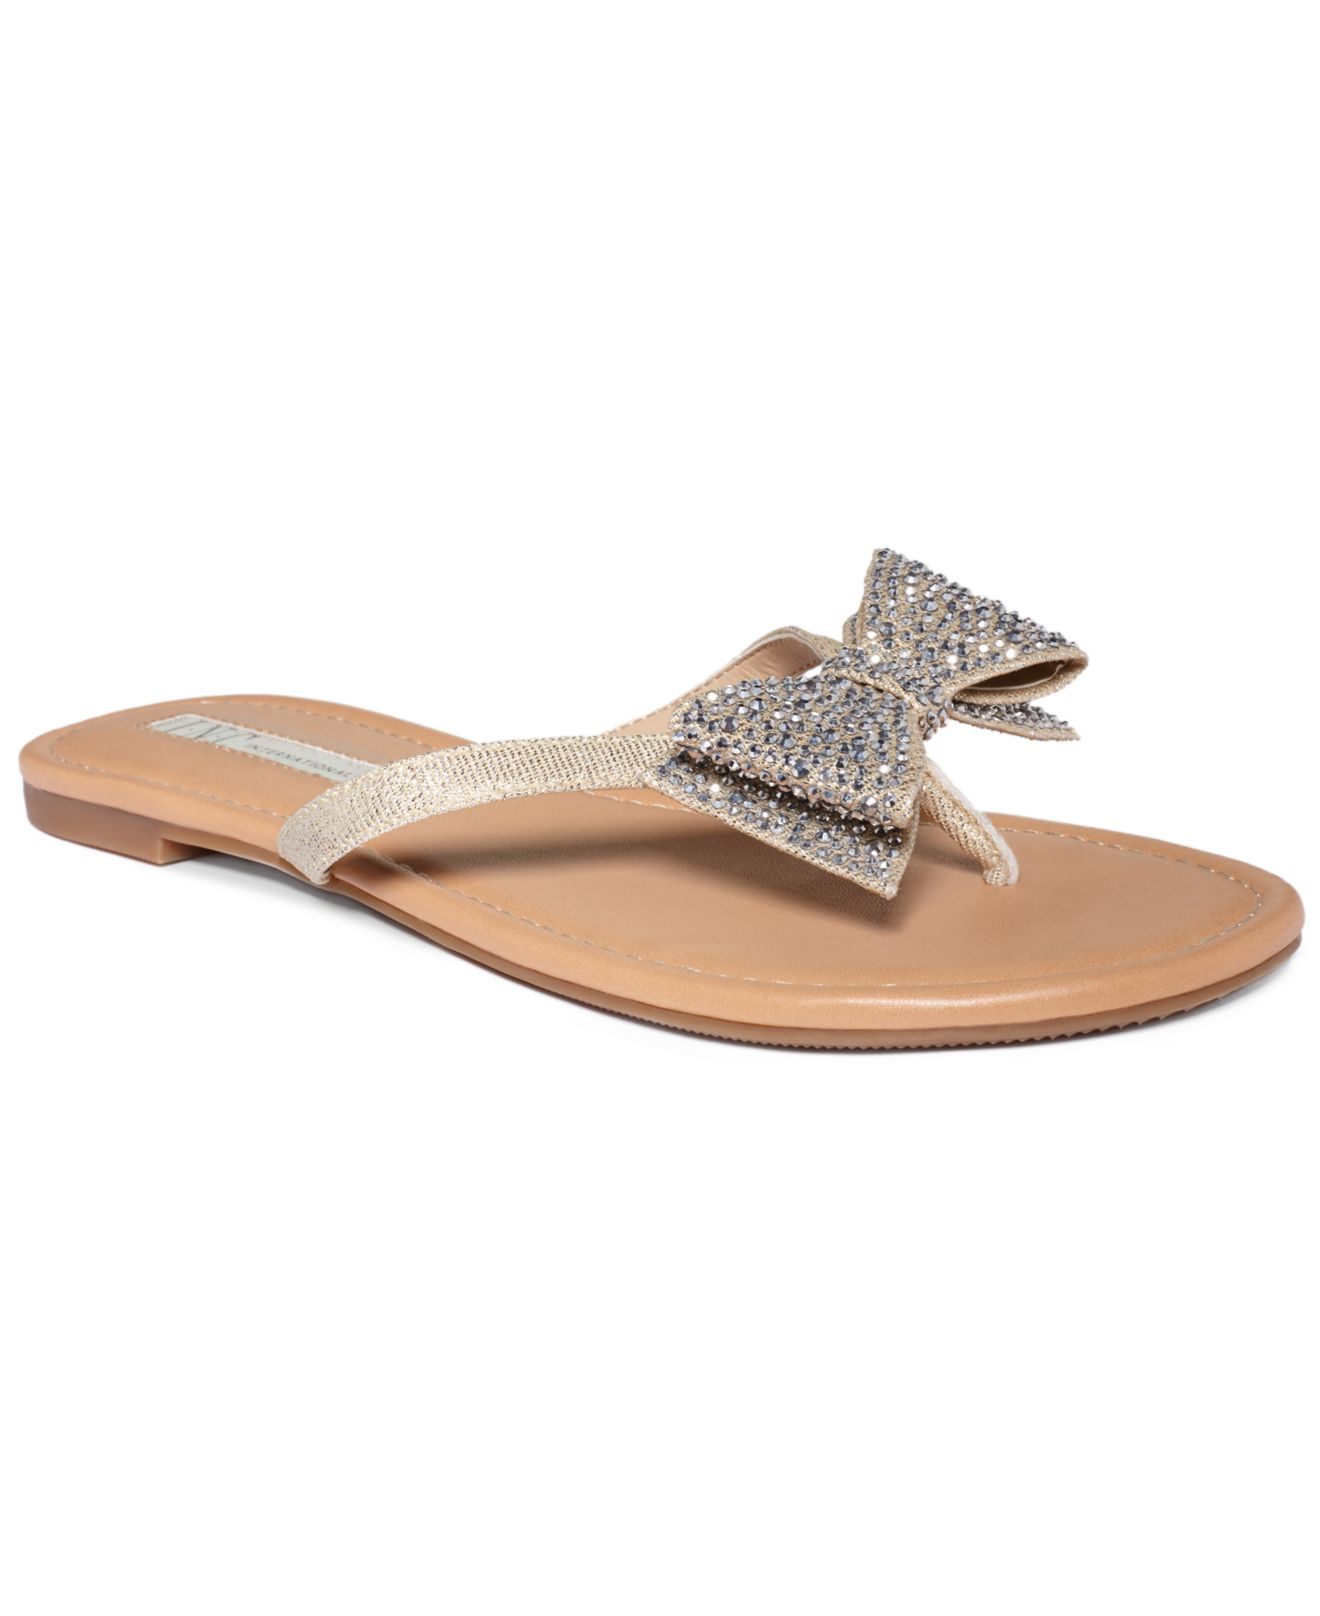 1f40560055371 Lyst - INC International Concepts Womens Maey Bow Thong Sandals in ...